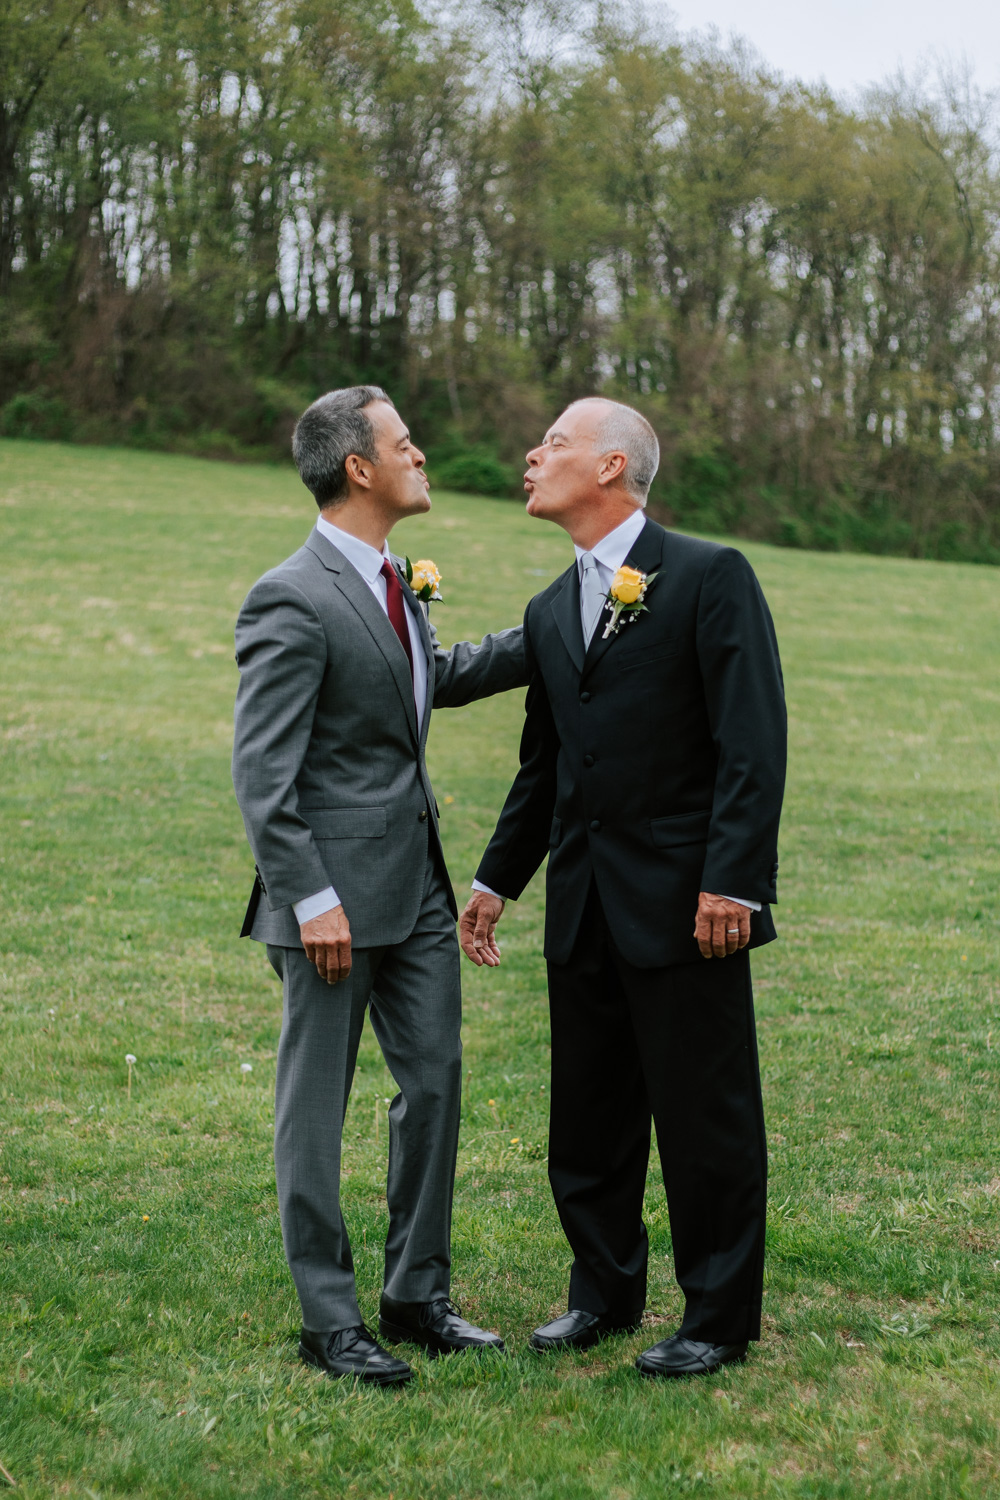 Shutter Up Studios   Wedding photographer in Pittsburgh, Pennsylvania   Outdoor formal family portraits